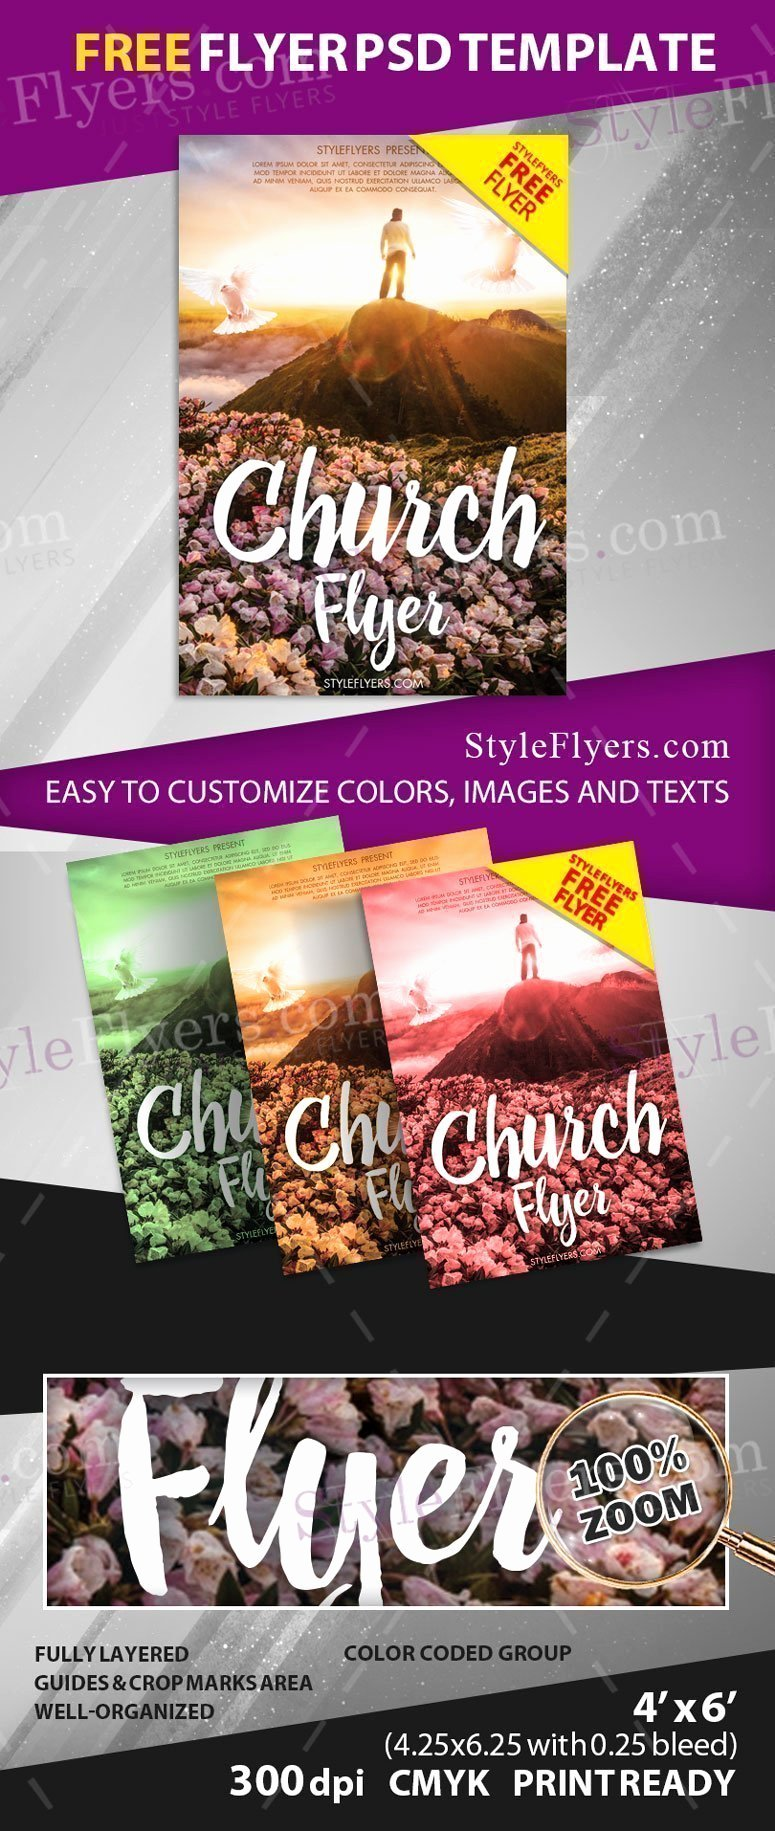 Free Church Flyer Templates Psd Fresh Church Free Psd Flyer Template Free Download